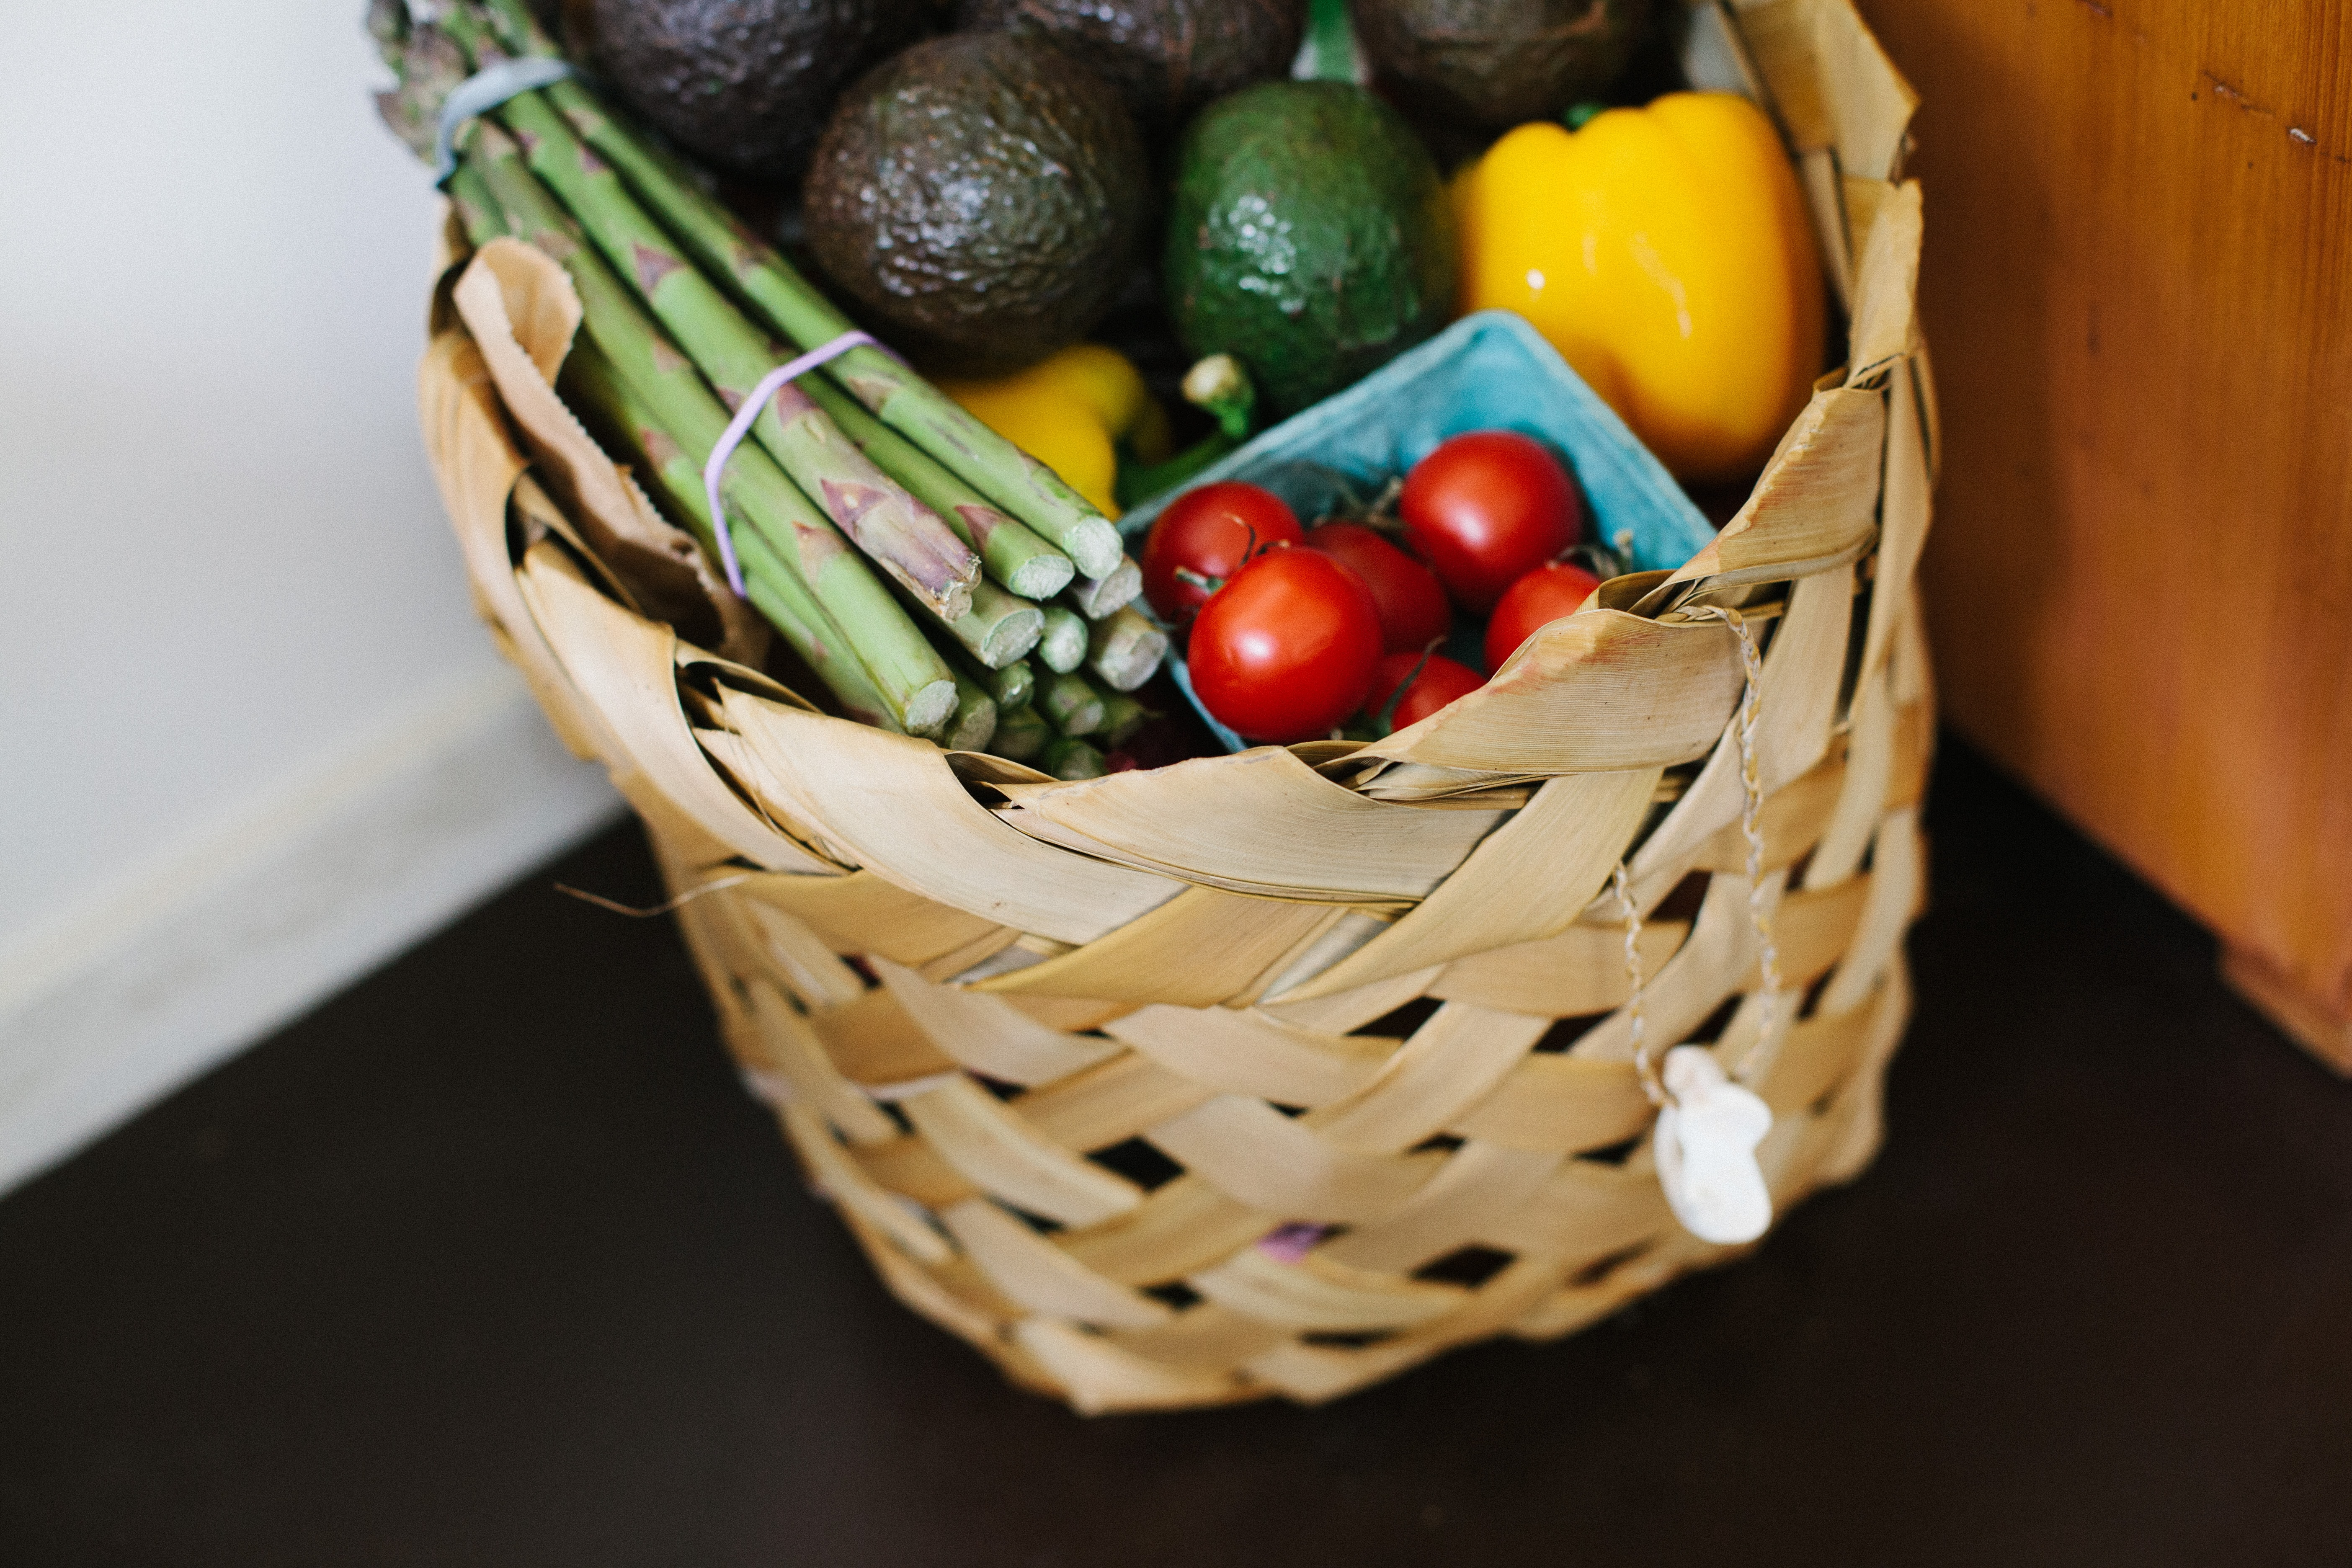 Basket of fresh produce with tomatoes, avocados, peppers, and asparagus